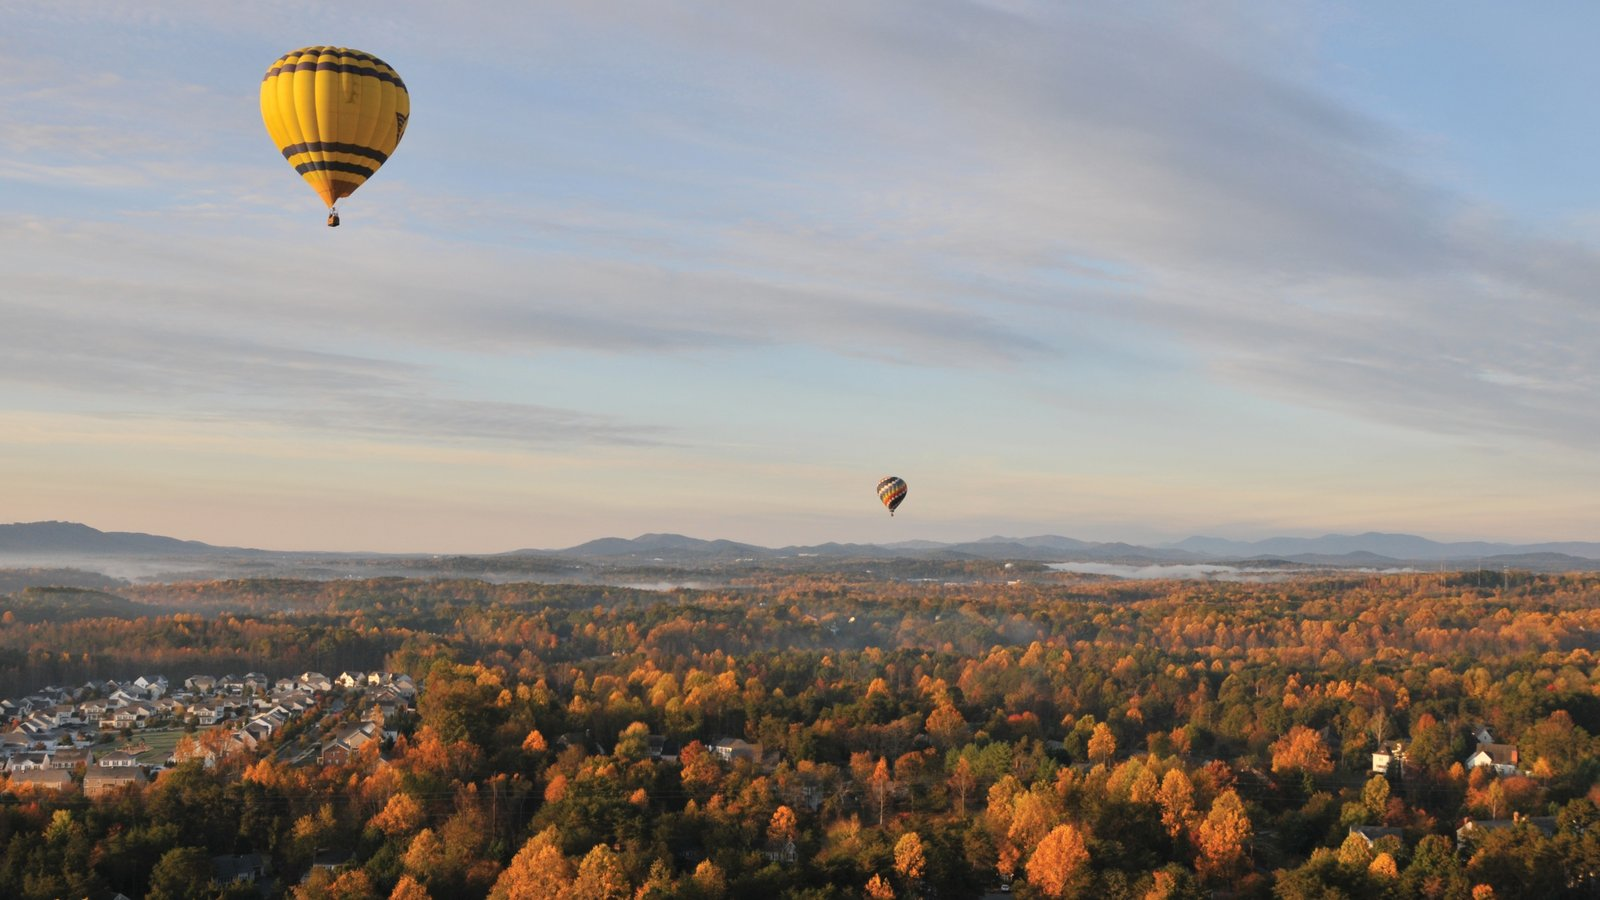 Charlottesville showing autumn leaves, landscape views and forest scenes